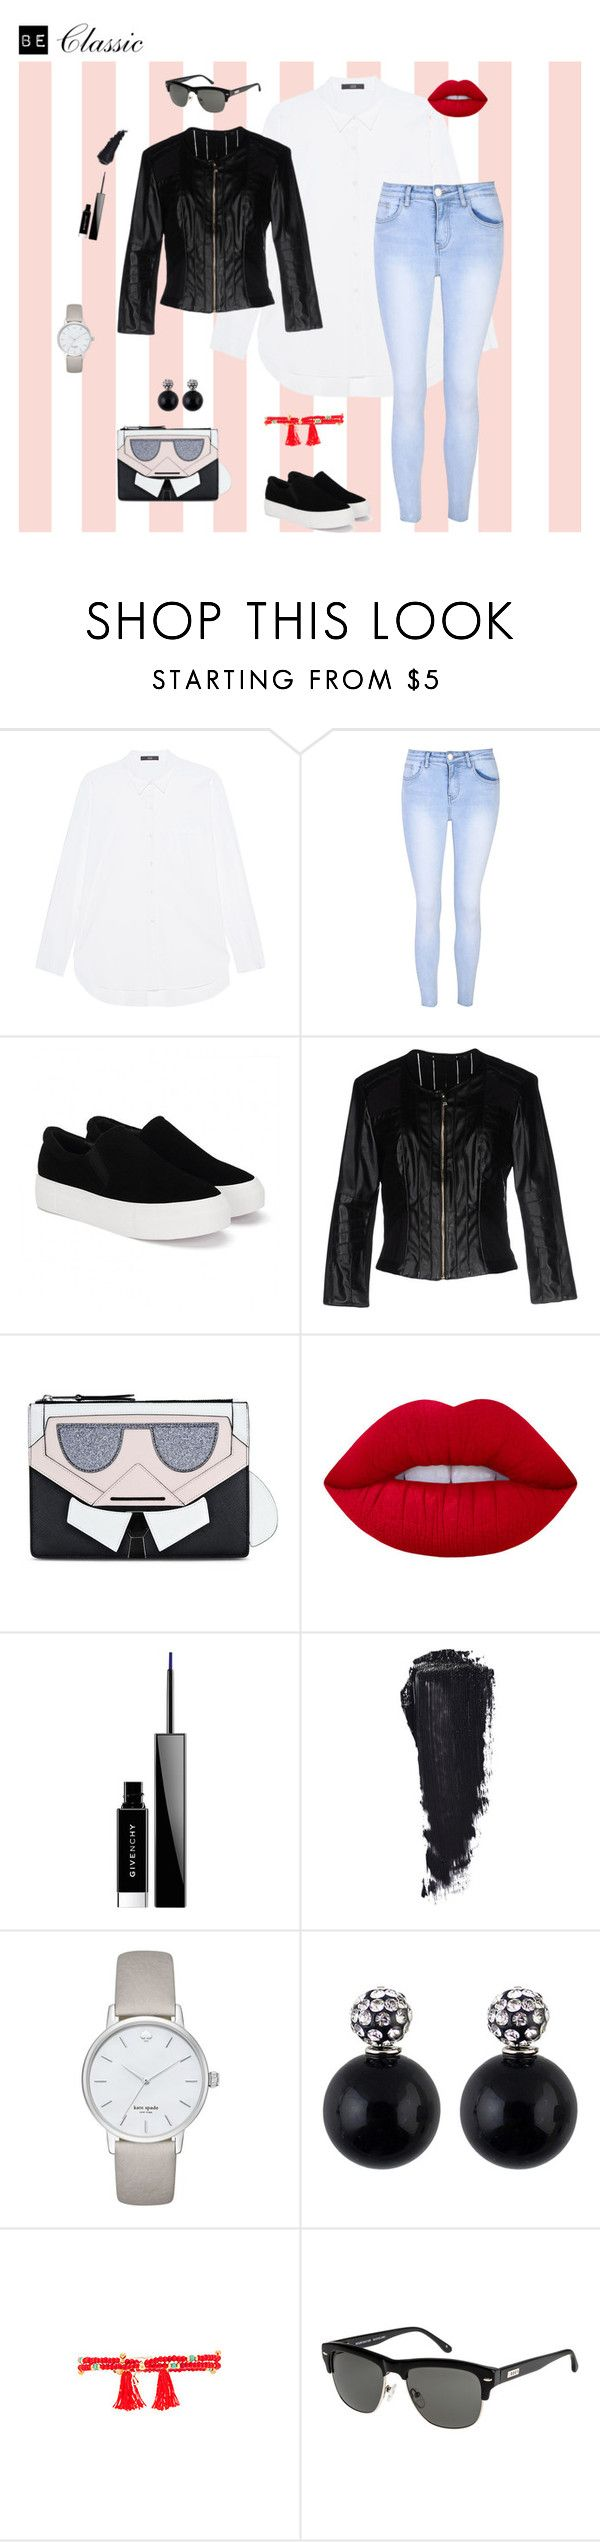 """Be Classic"" by nikyx on Polyvore featuring Steffen Schraut, Glamorous, Silvian Heach, Karl Lagerfeld, Lime Crime, Givenchy, Kate Spade and Shashi"